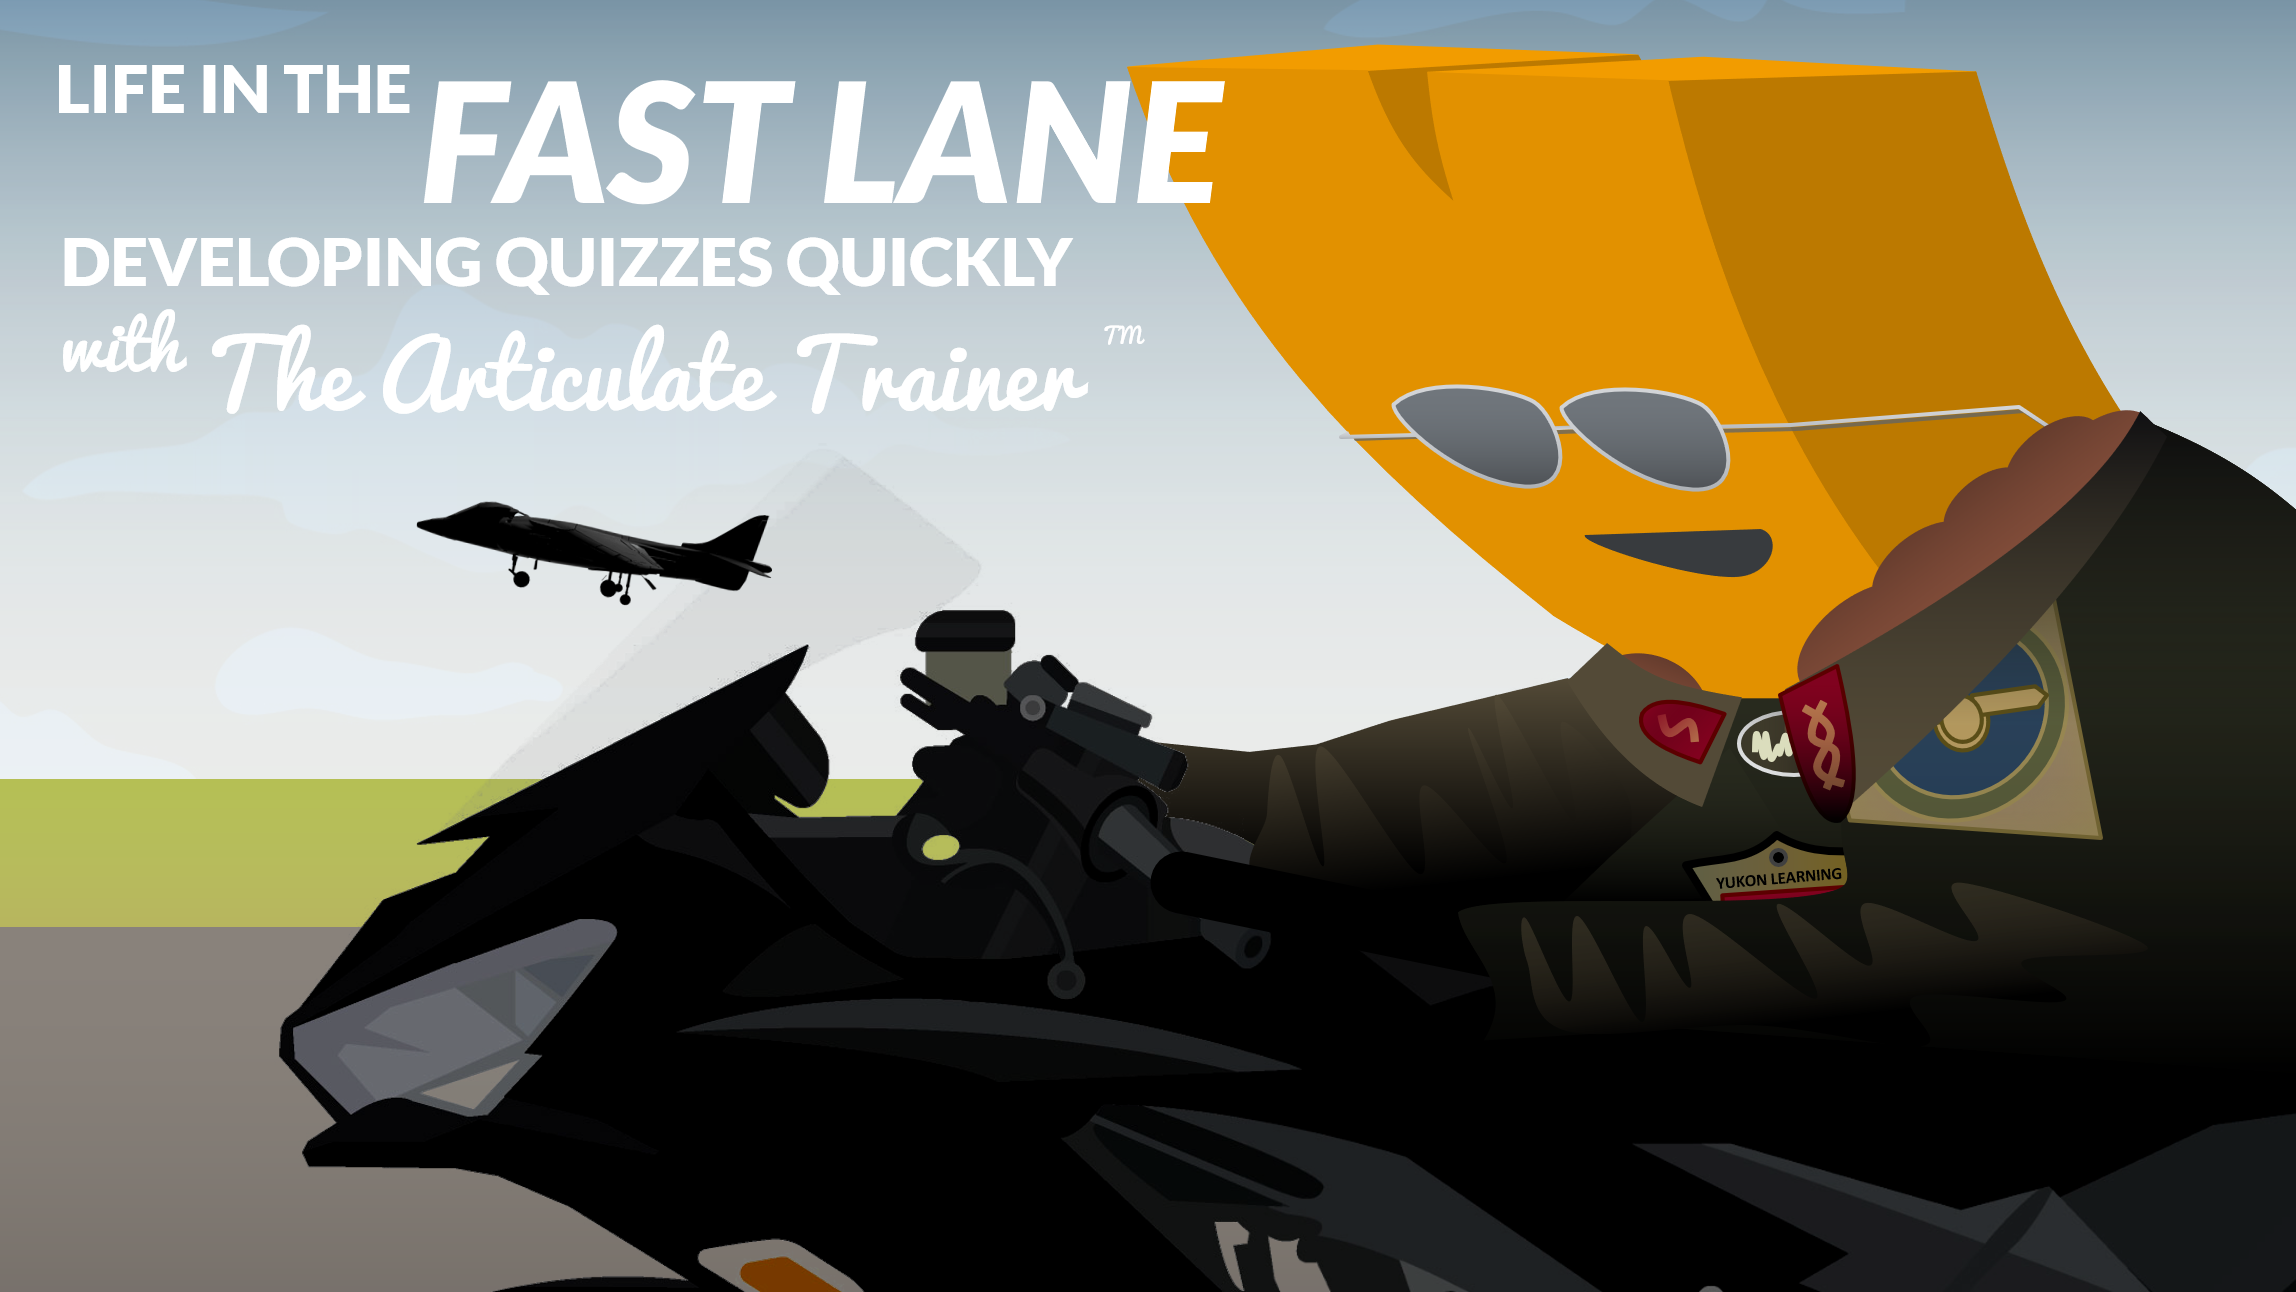 Life in the Fast Lane: Developing Quizzes Quickly with The Articulate Trainer